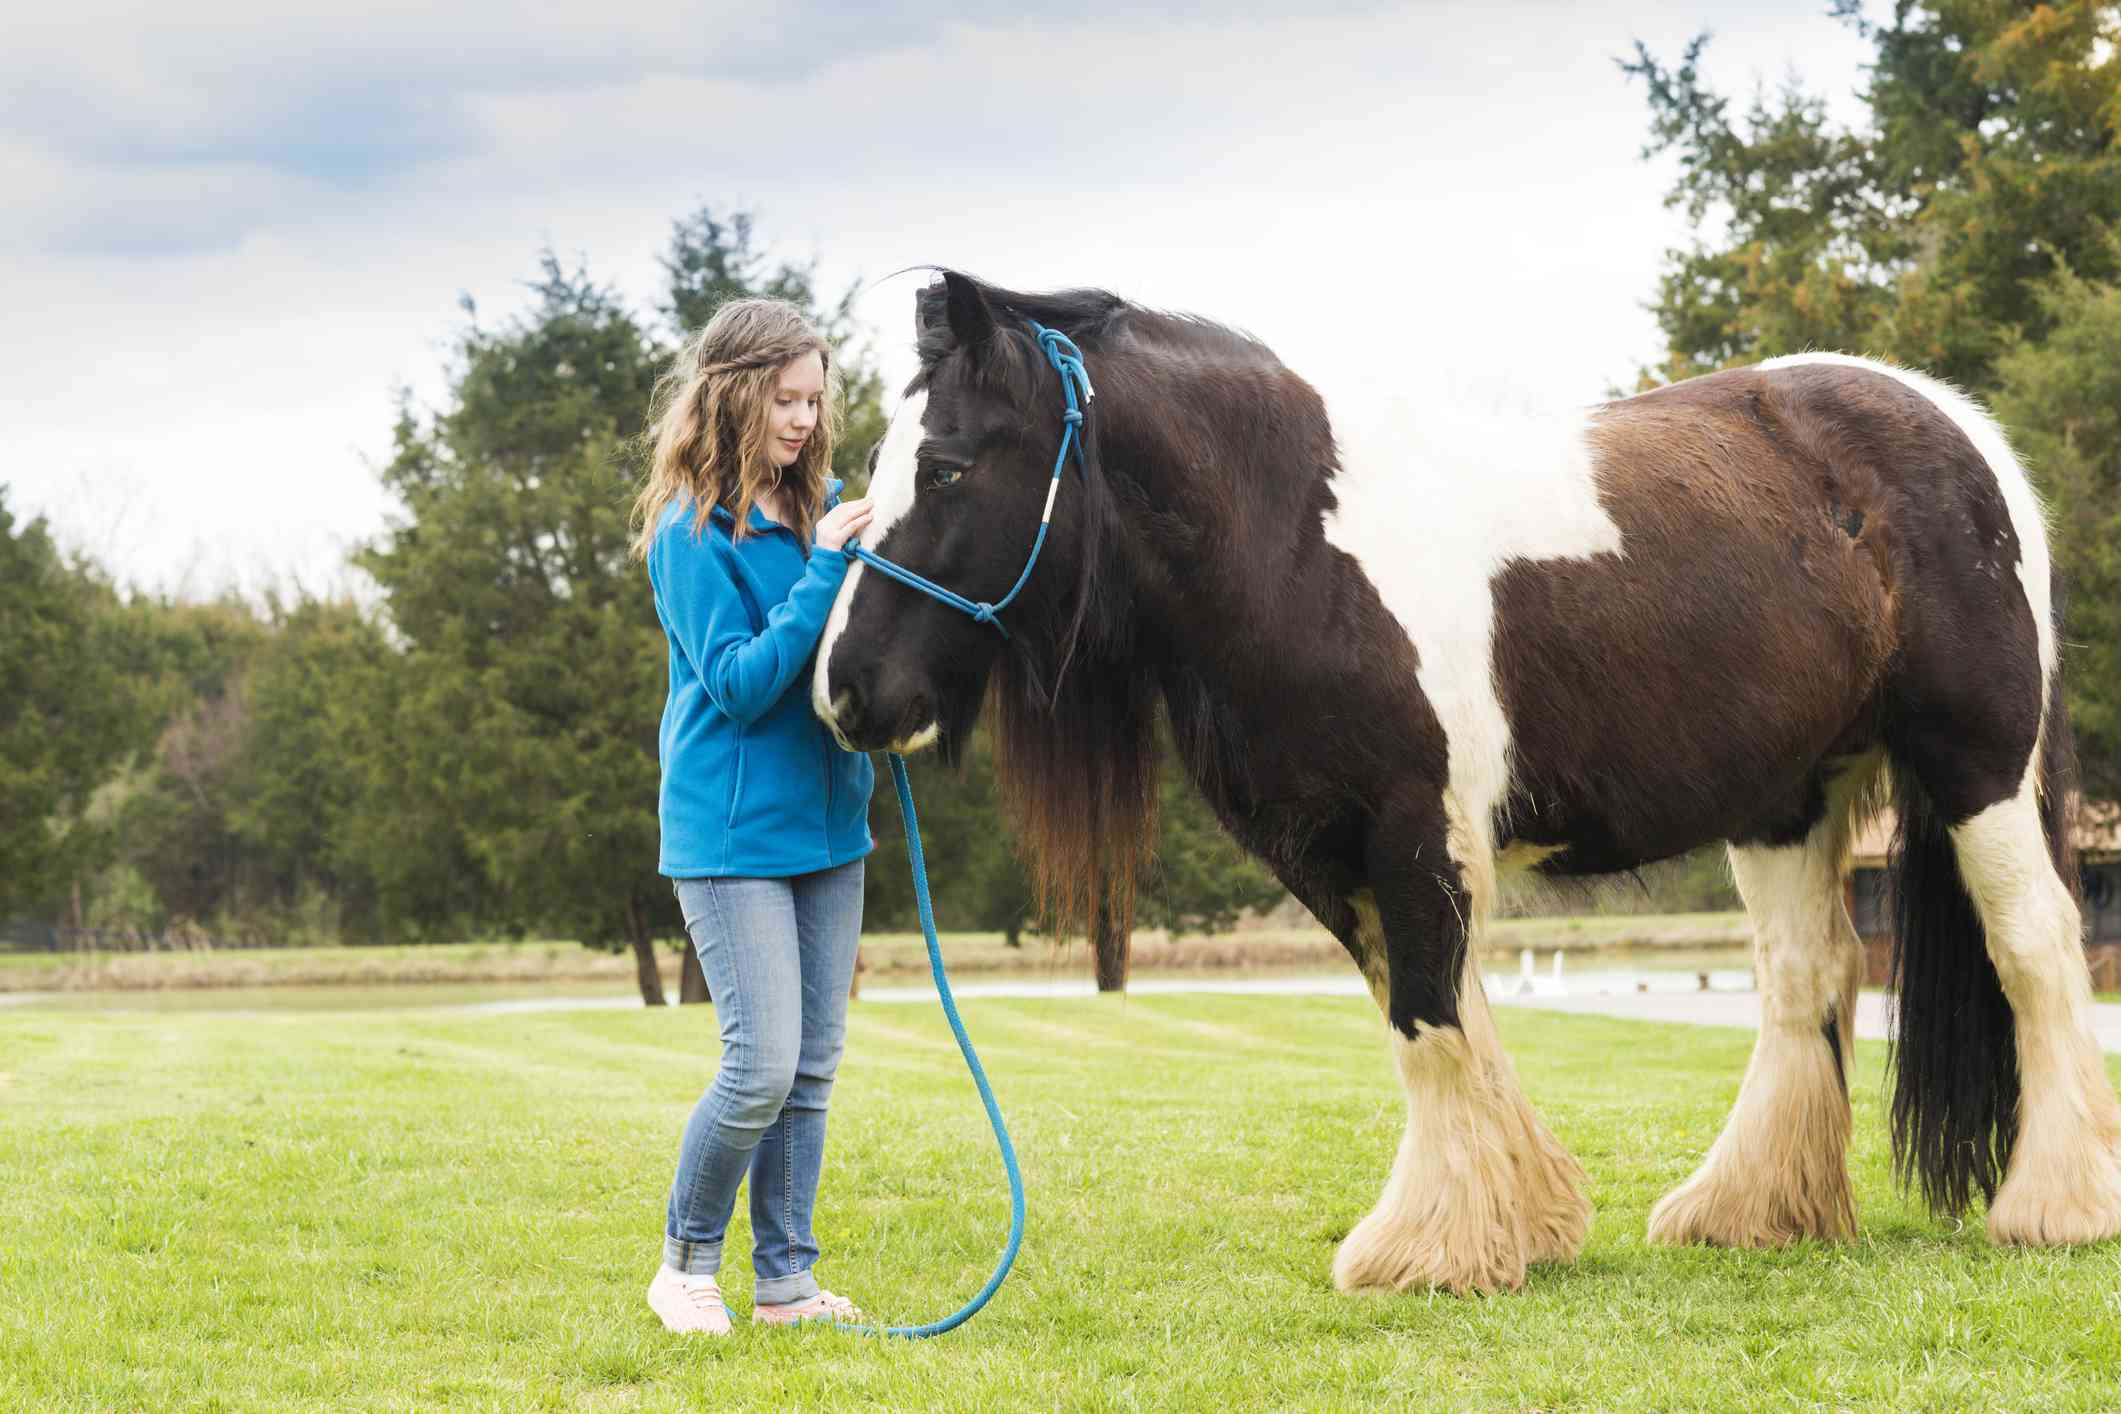 Gypsy Vanner and young girl doing groundwork.